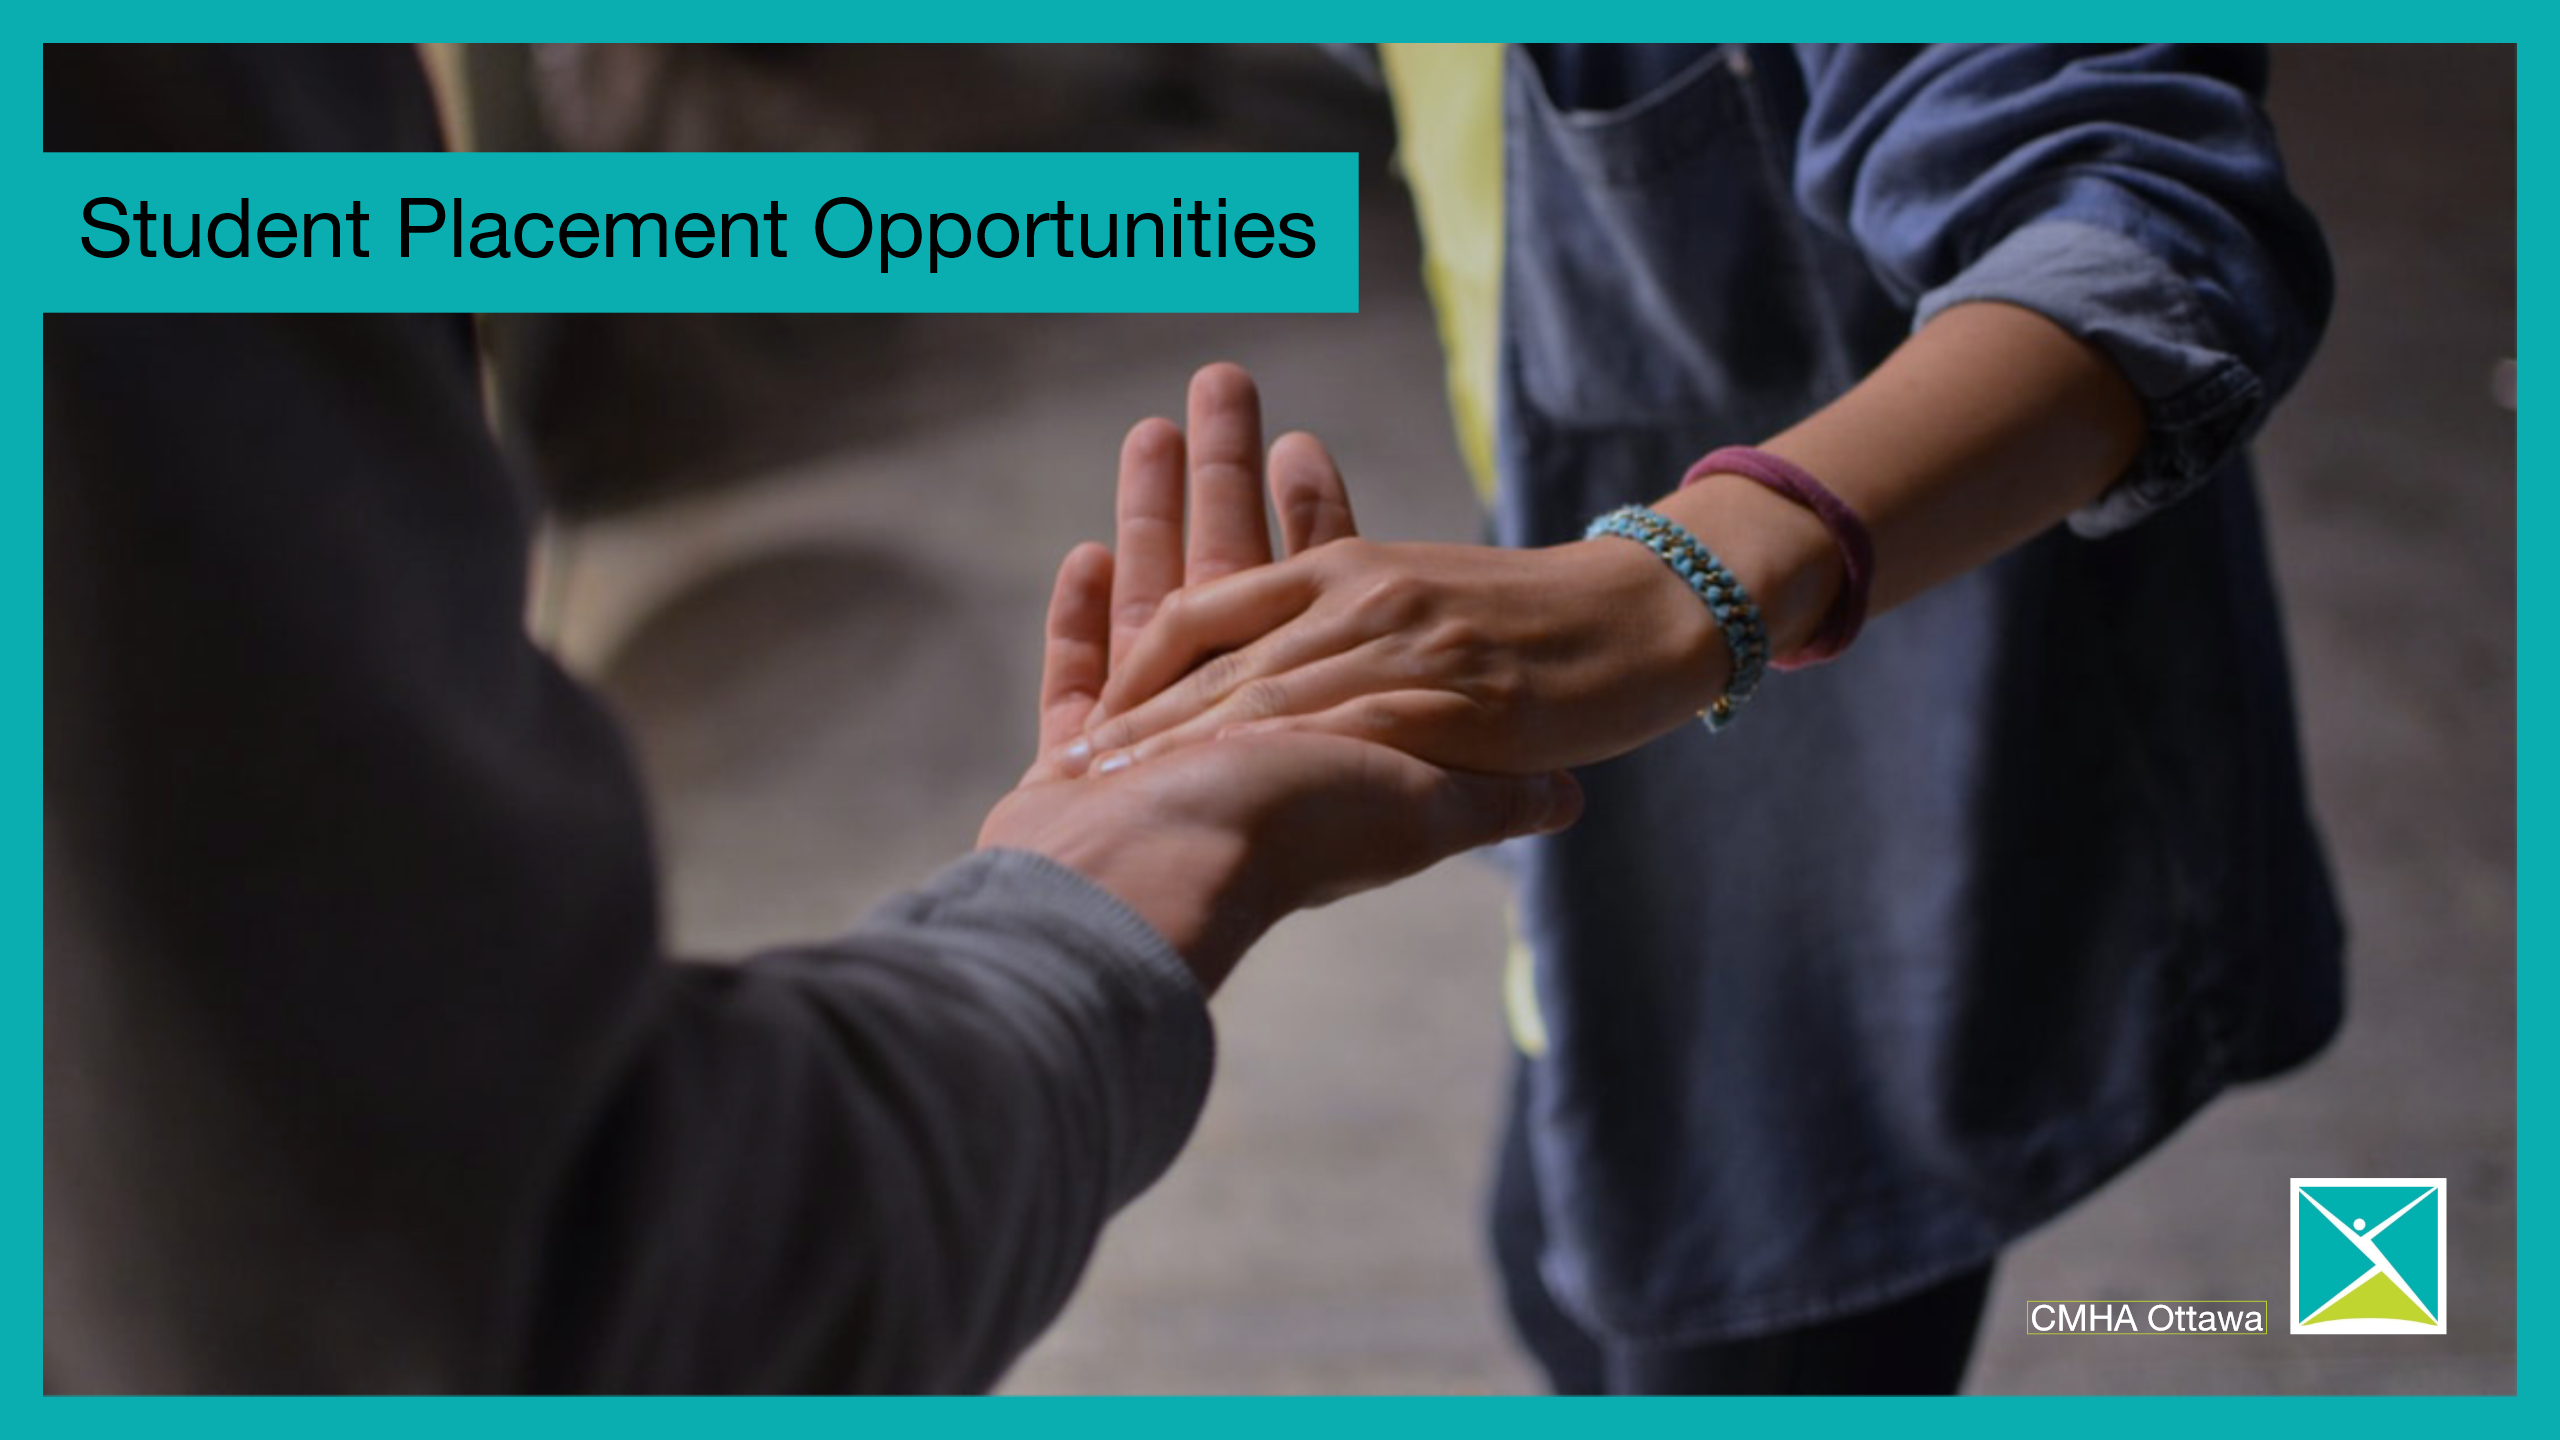 A friend takes the hand of a friend -- Student Placement Opportunities